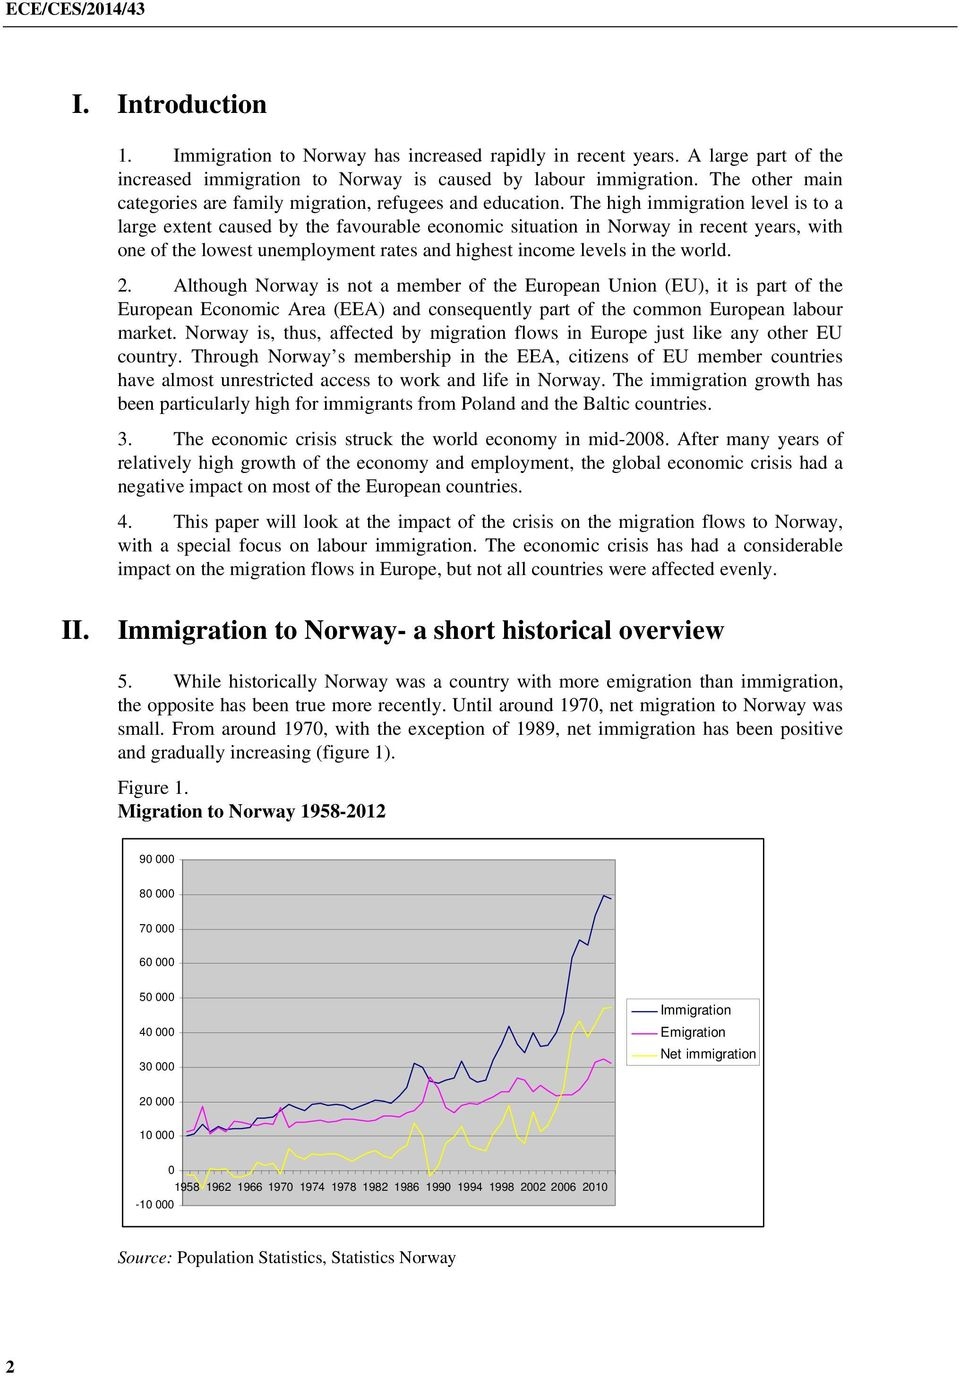 The high immigration level is to a large extent caused by the favourable economic situation in Norway in recent years, with one of the lowest unemployment rates and highest income levels in the world.